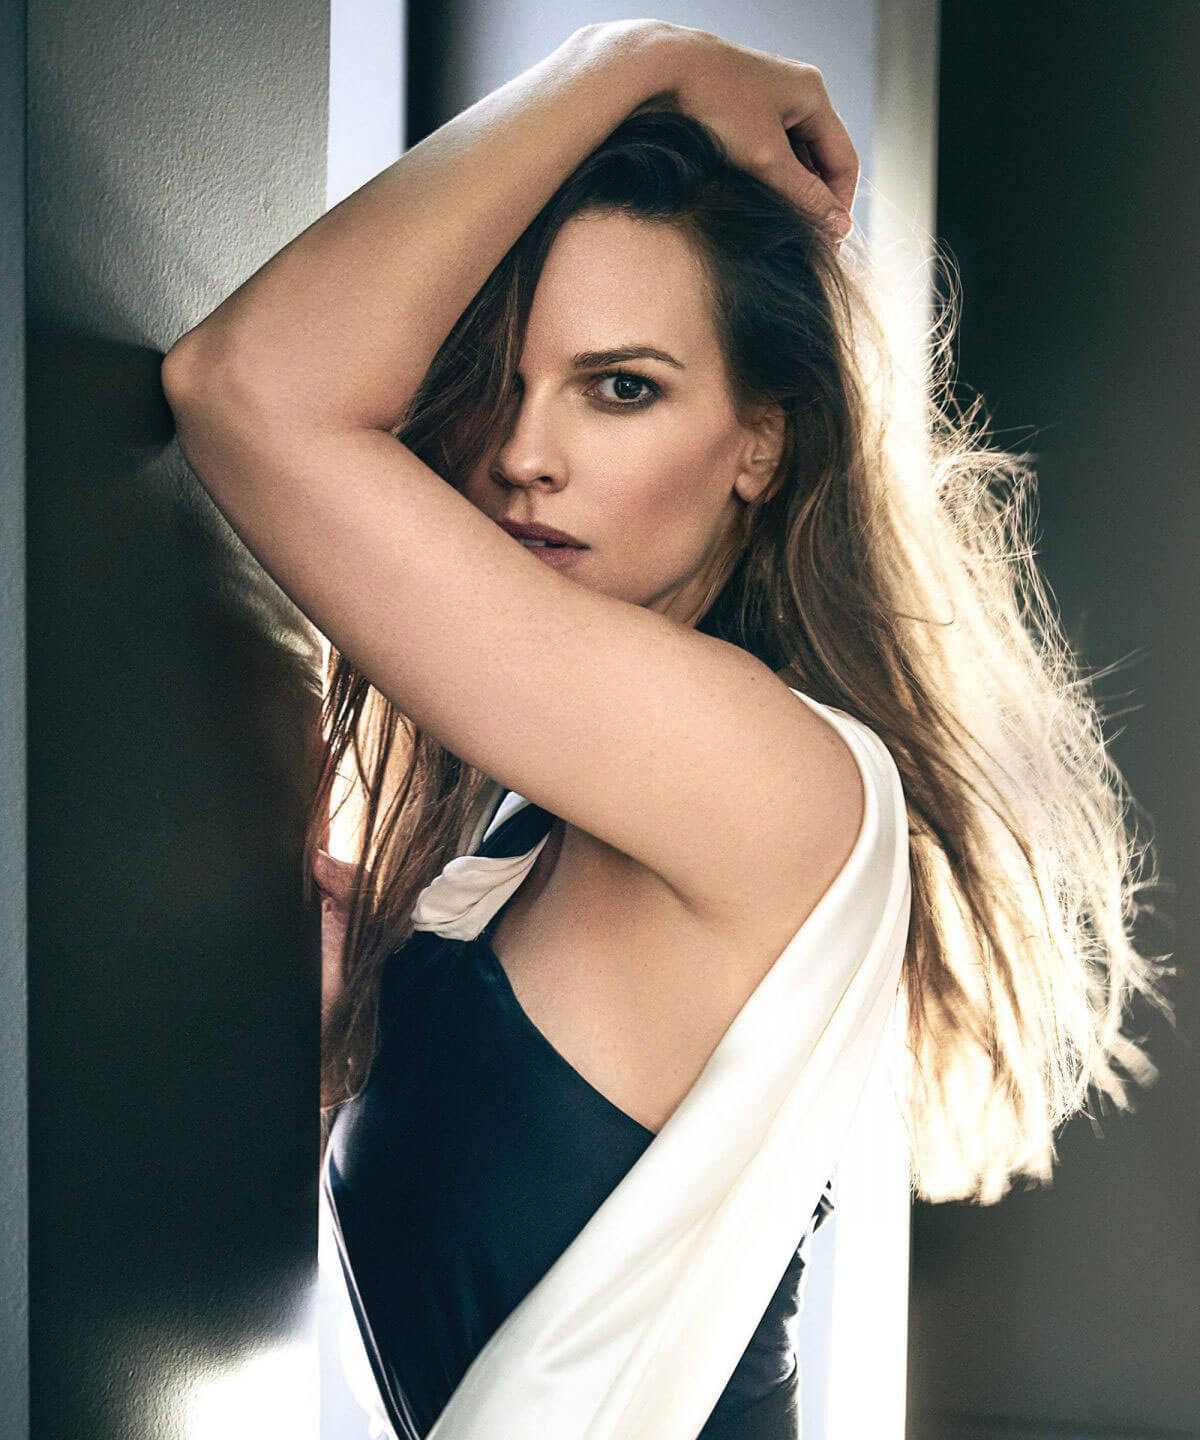 Hilary Swank Stills in Los Angeles Confidential Magazine, Spring/Summer 2018